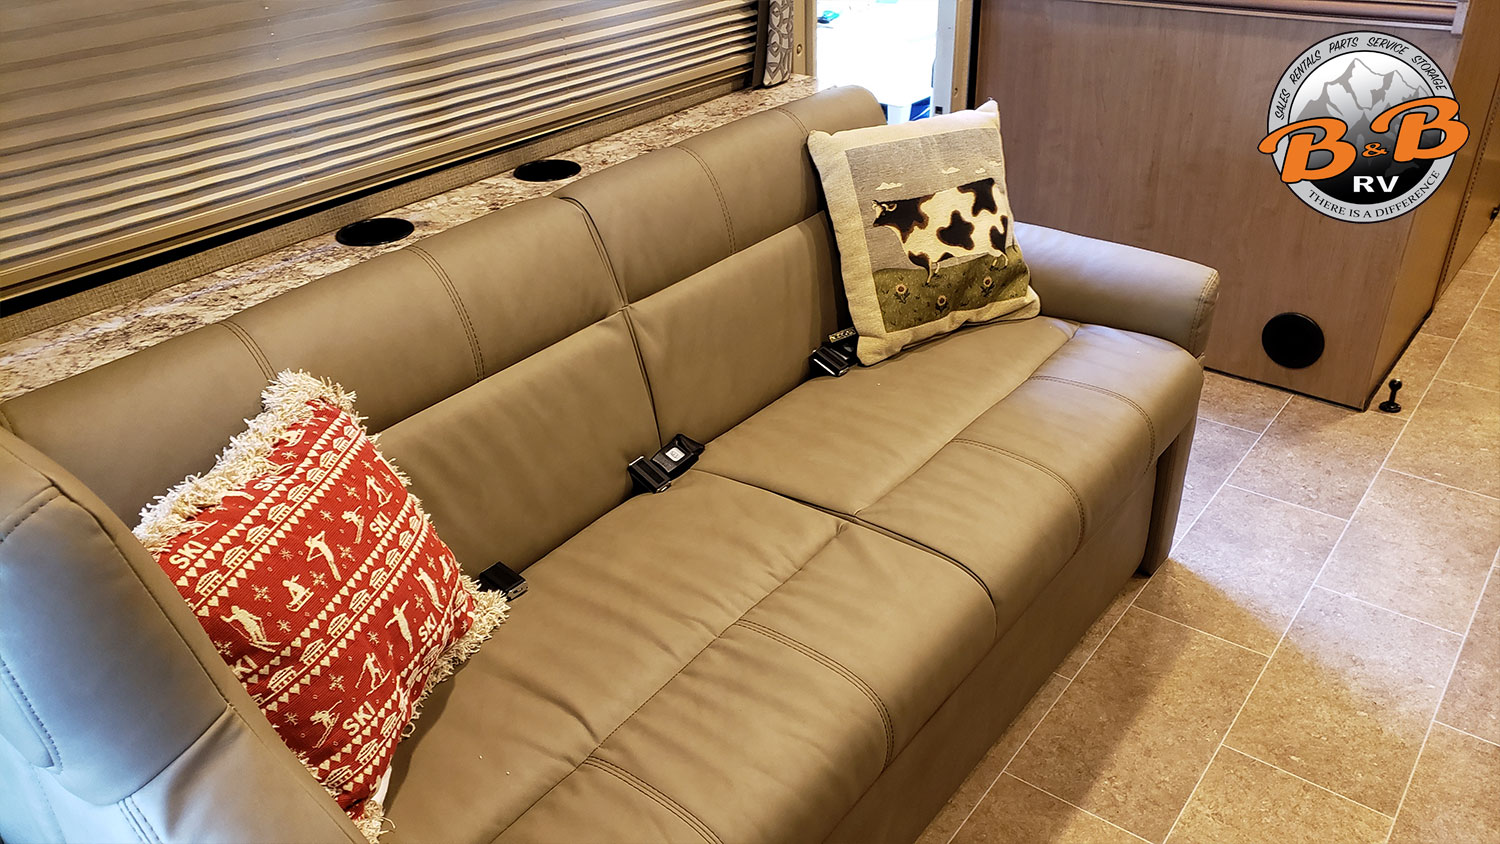 Thor Chateau Class C RV 28Z Couch